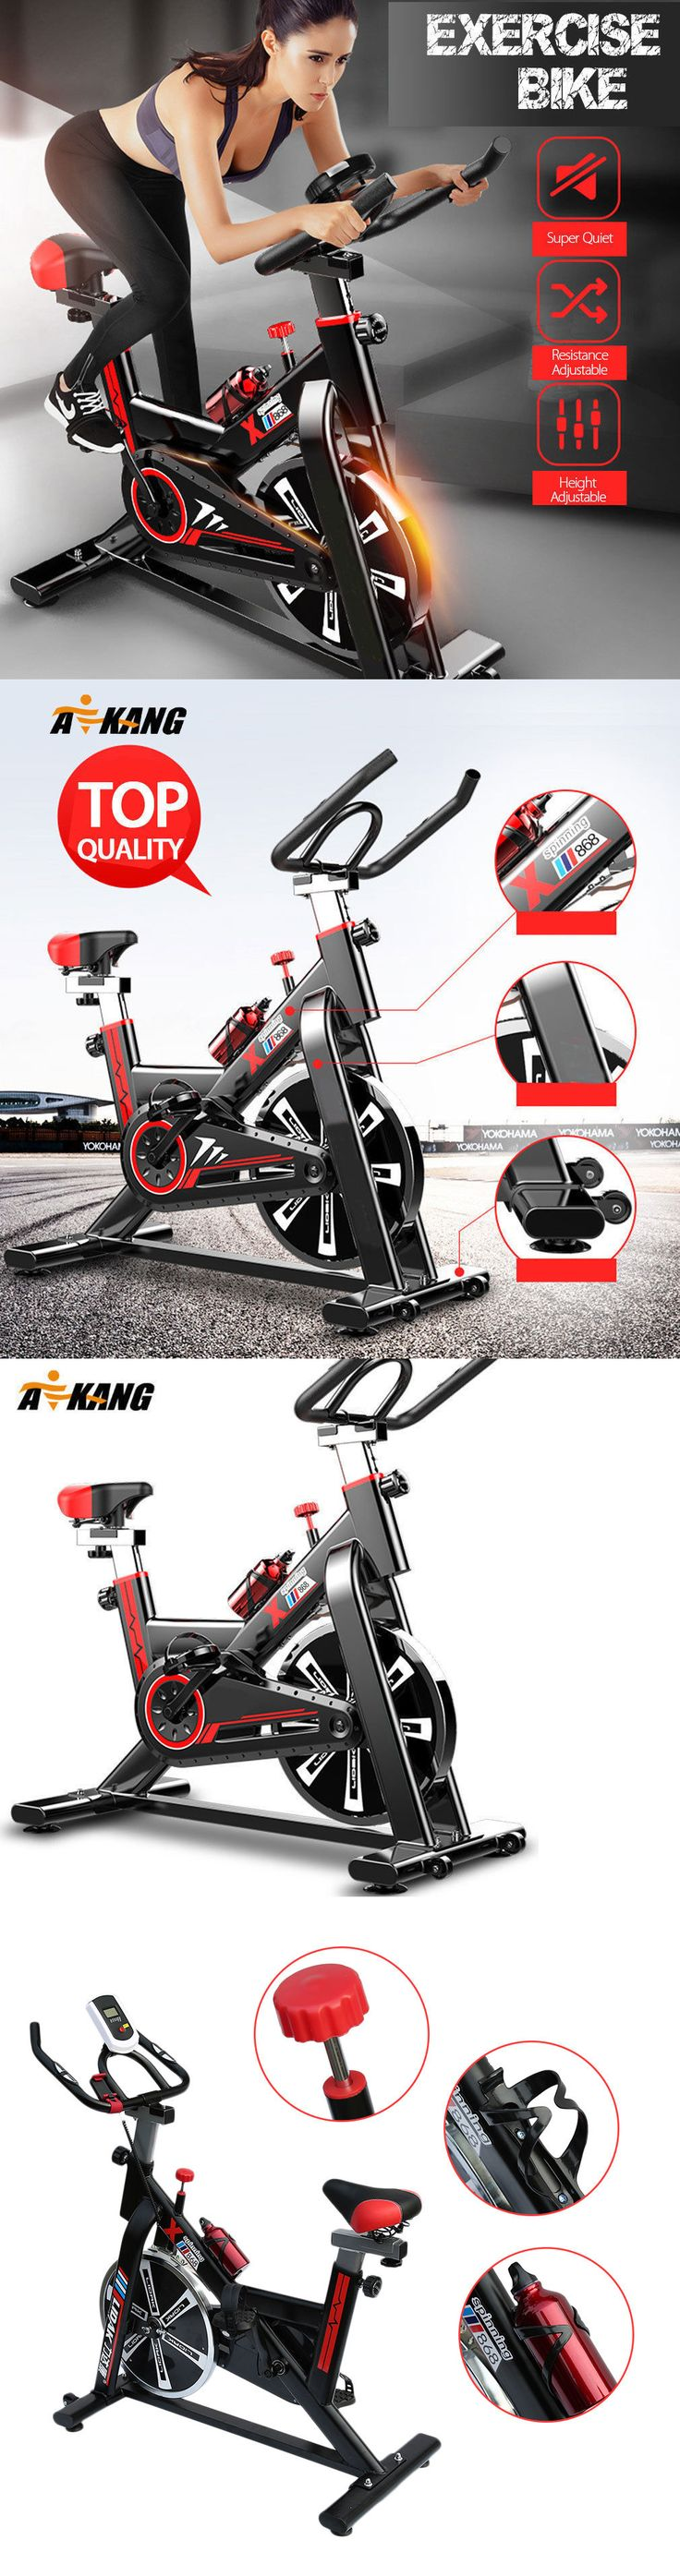 Exercise Bikes 58102: Top Exercise Bicycle Stationary Indoor Bike Trainer Fitness Home Gym Workout Alp -> BUY IT NOW ONLY: $138.95 on eBay!